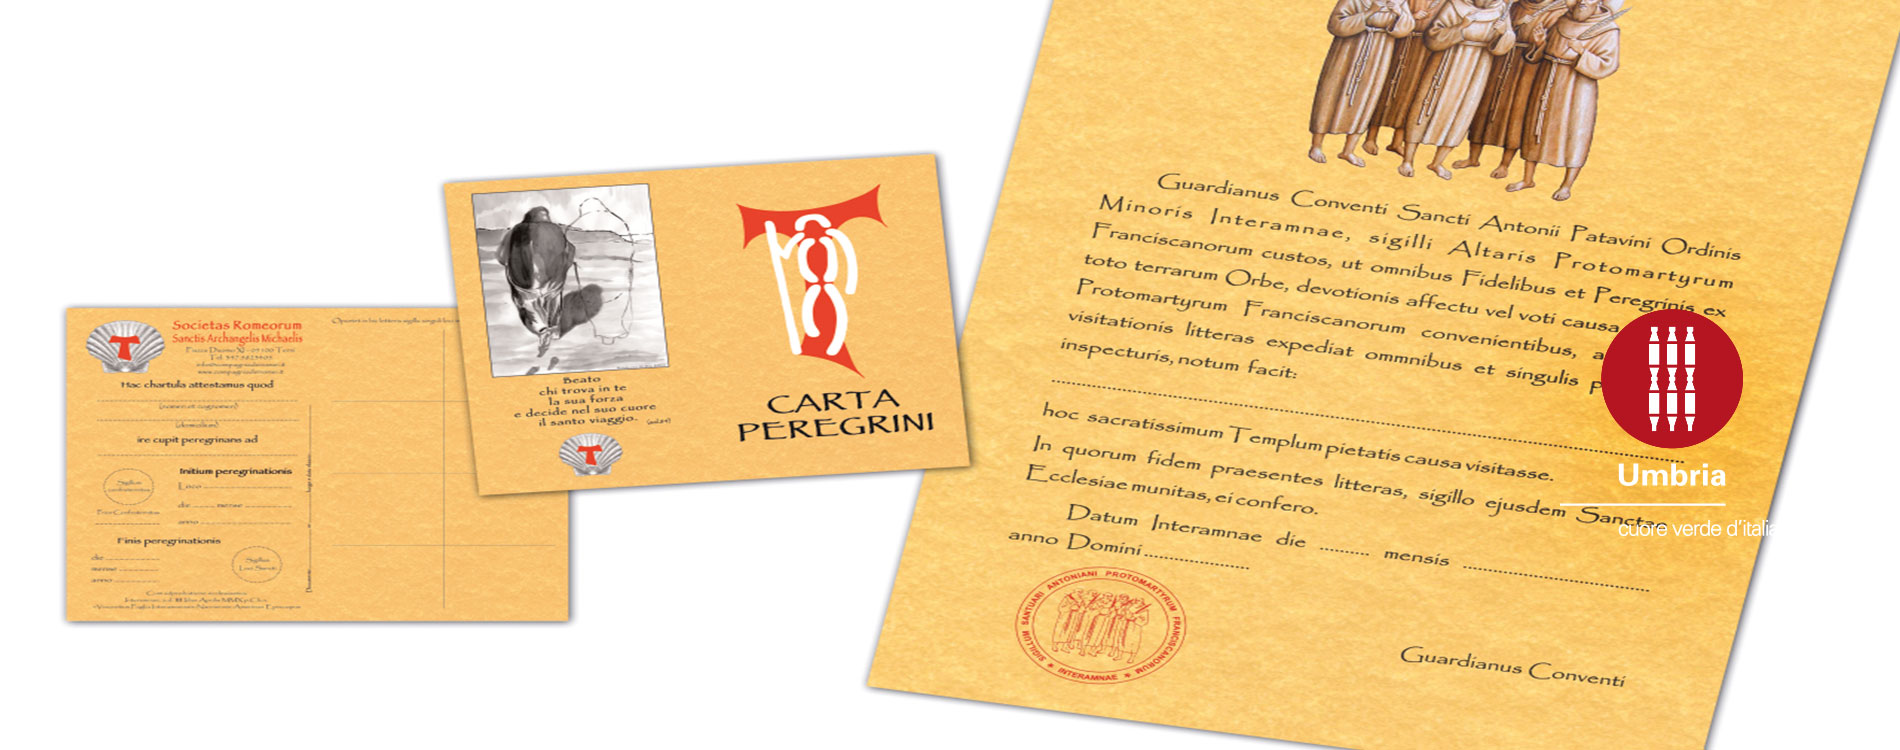 the-credential-pas-and-the-officiale-certificate-of-pilgrimage-the-way-of-the-franciscan-proto-martyrs.jpg